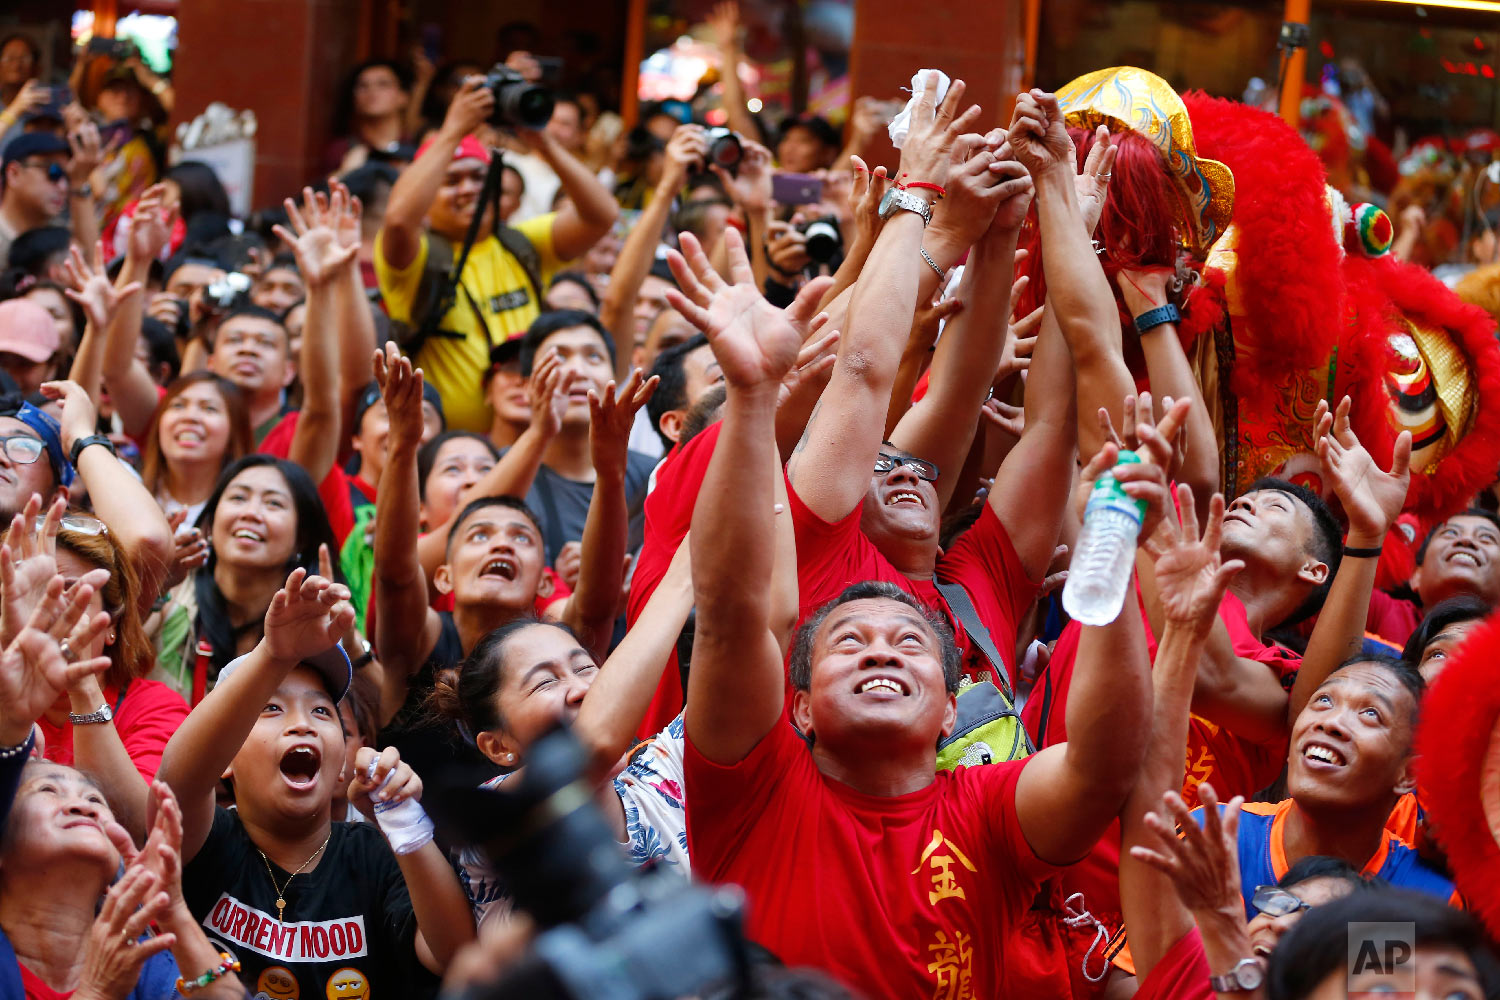 Crowds jostle to grab festive items being thrown at them during celebrations of the Lunar New Year in the Chinatown district in Manila, Philippines, Tuesday, Feb. 5, 2019. (AP Photo/Bullit Marquez)